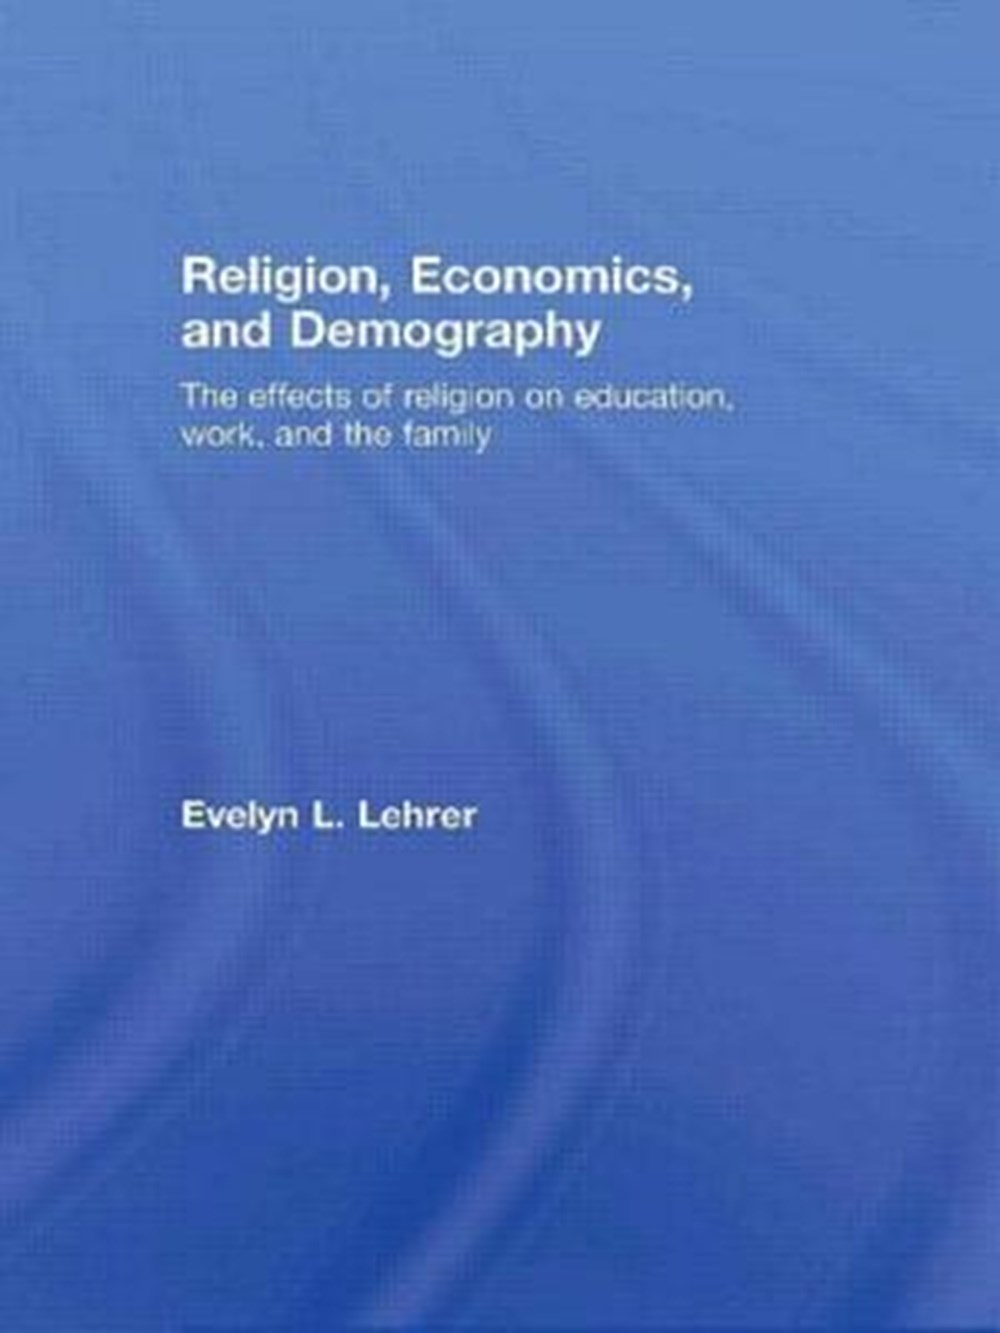 Religion, Economics and Demography The Effects of Religion on Education, Work, and the Family